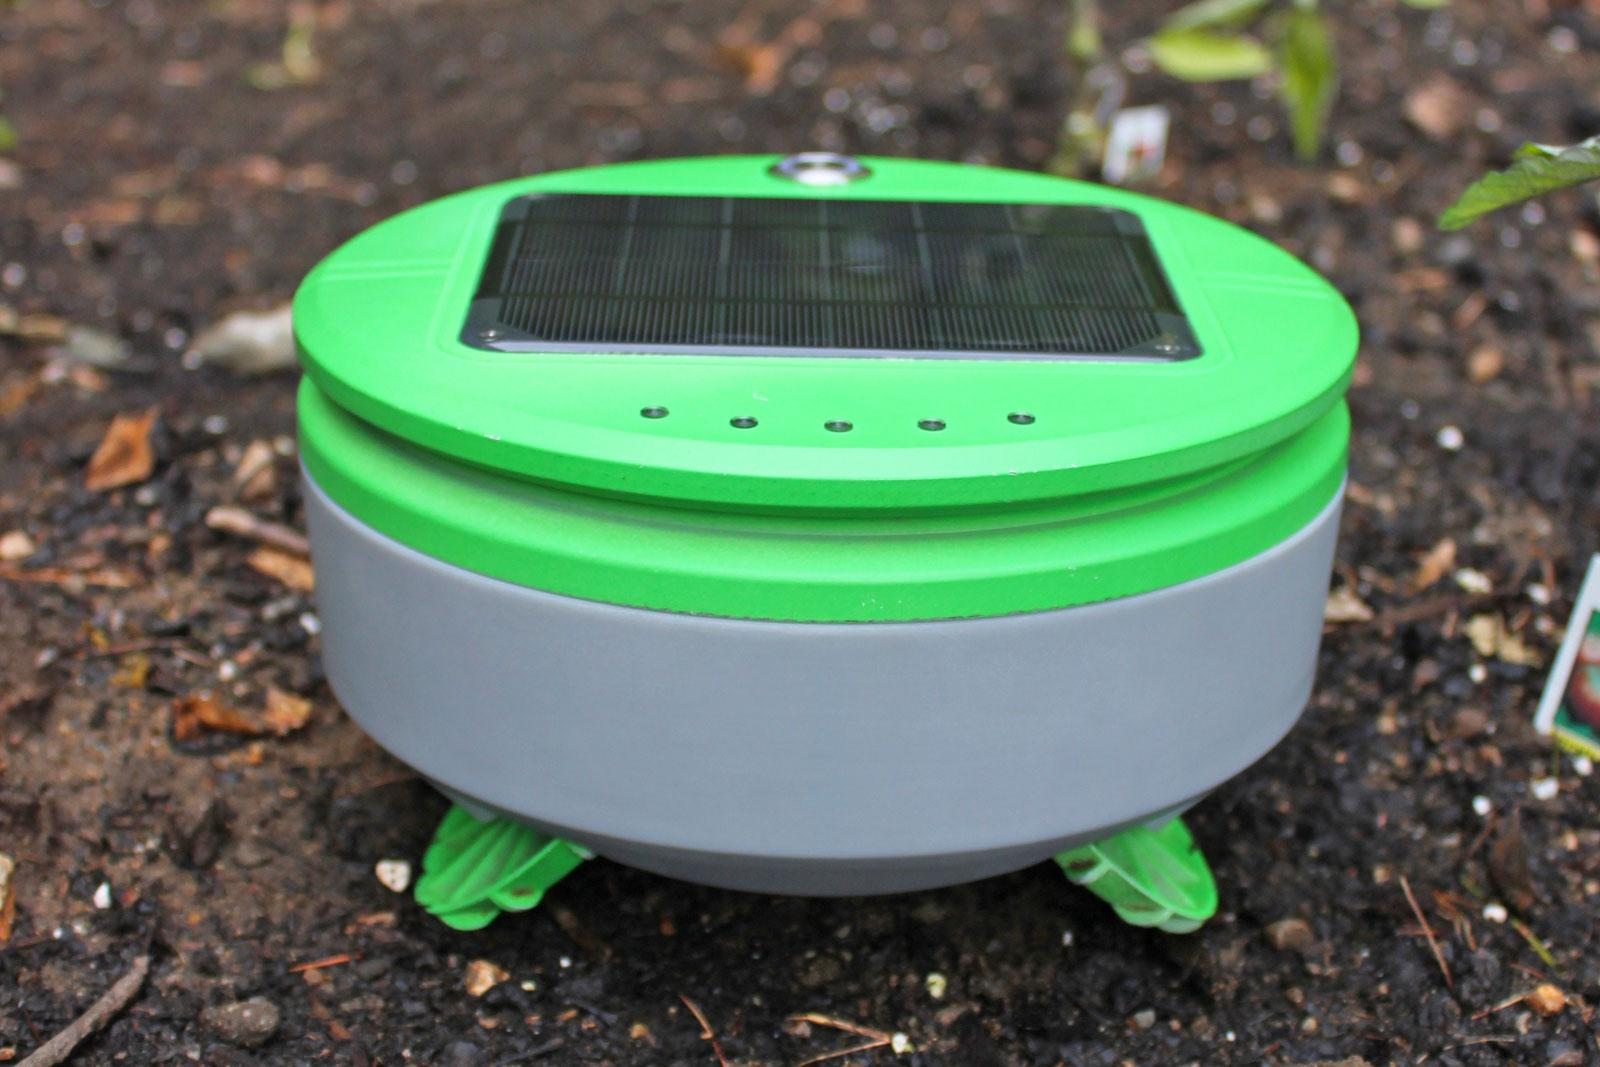 Roomba creator wants to do for gardens what he did for your floors | Engadget